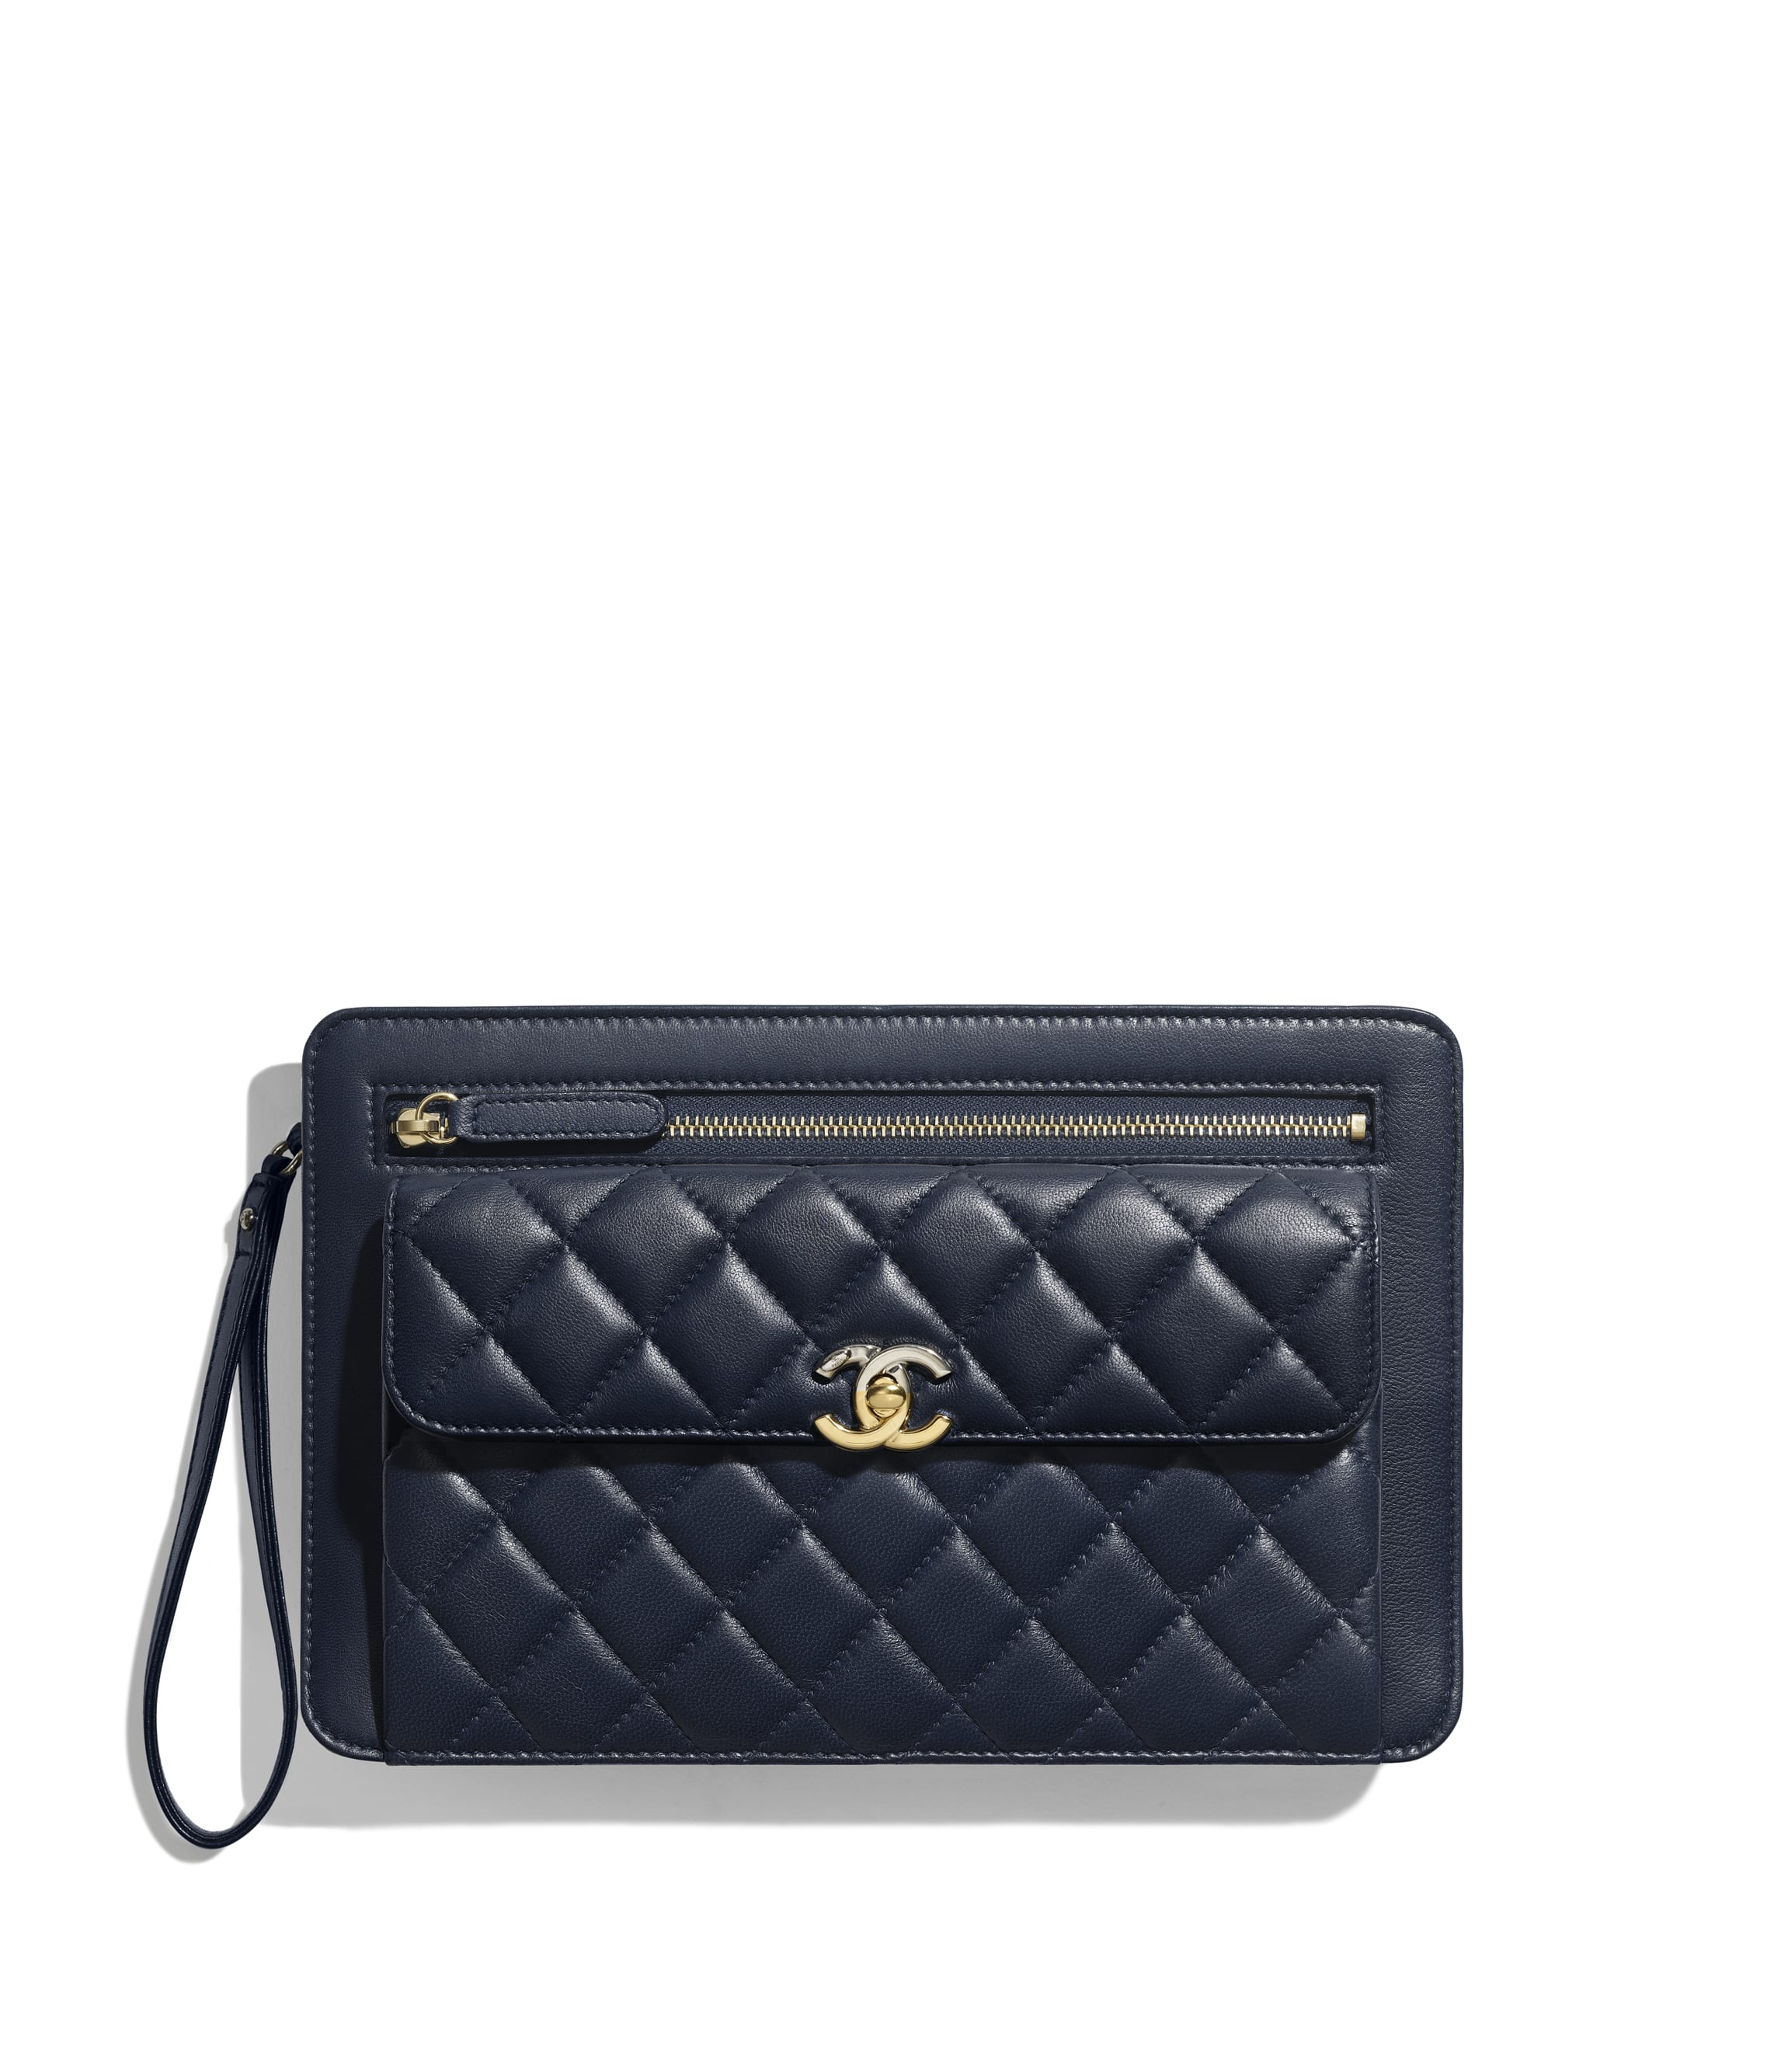 Small Leather Goods Chanel